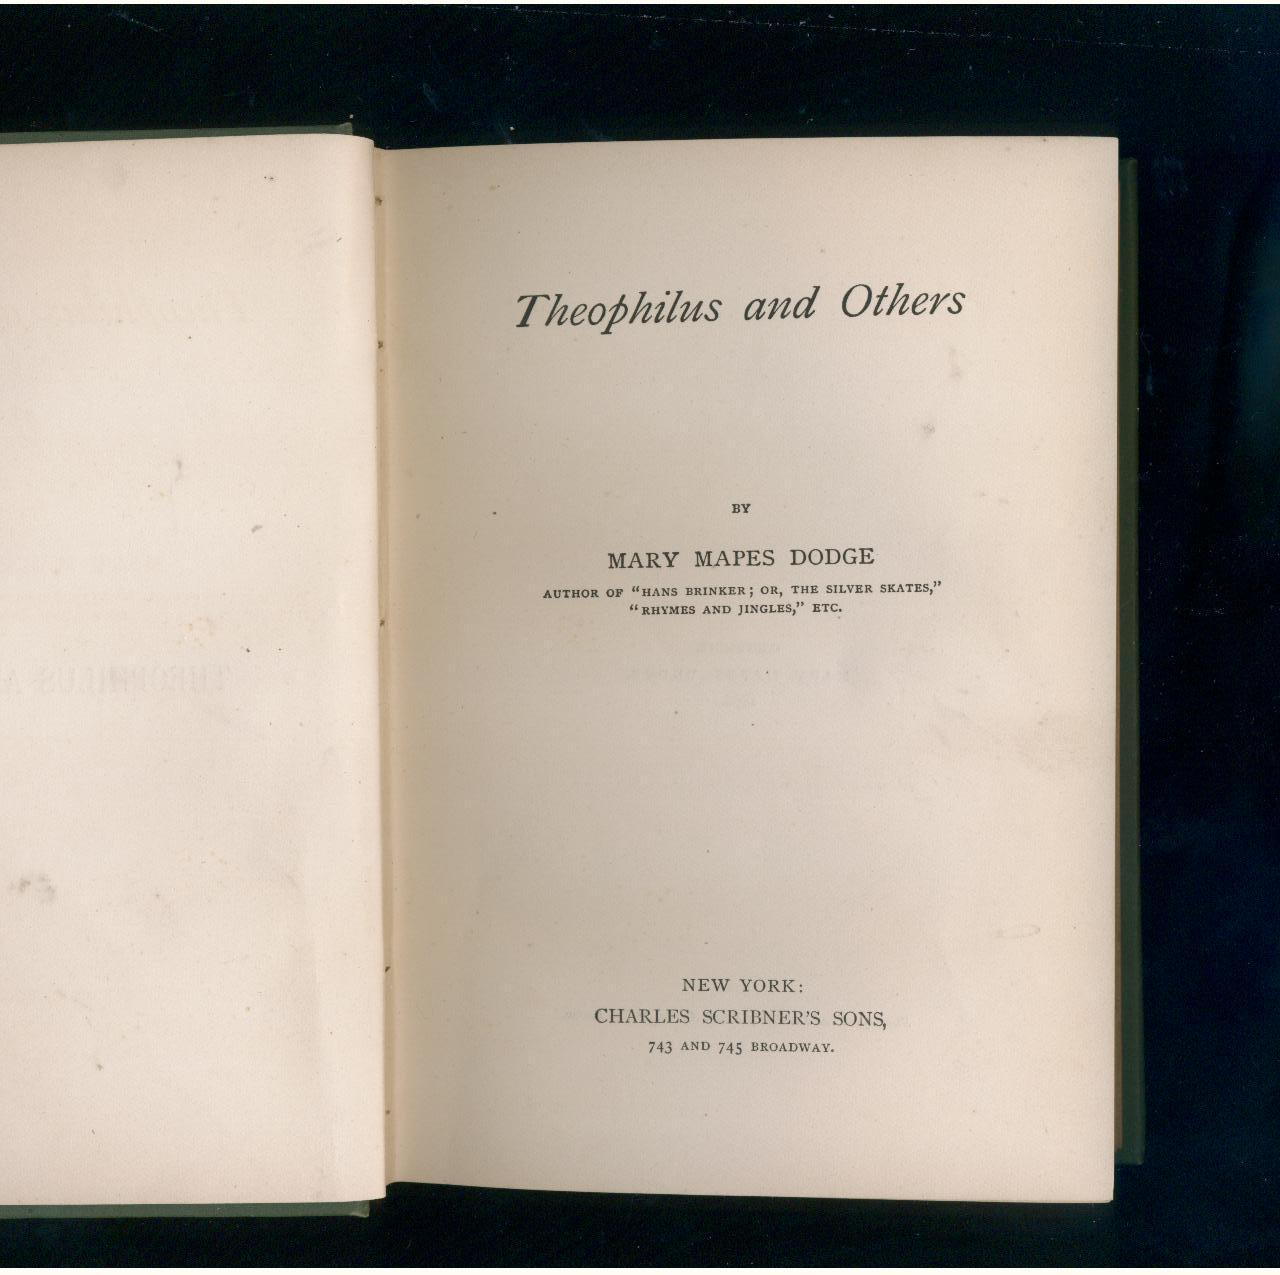 Mary Mapes Dodge Theophilus & Others 19th century printing